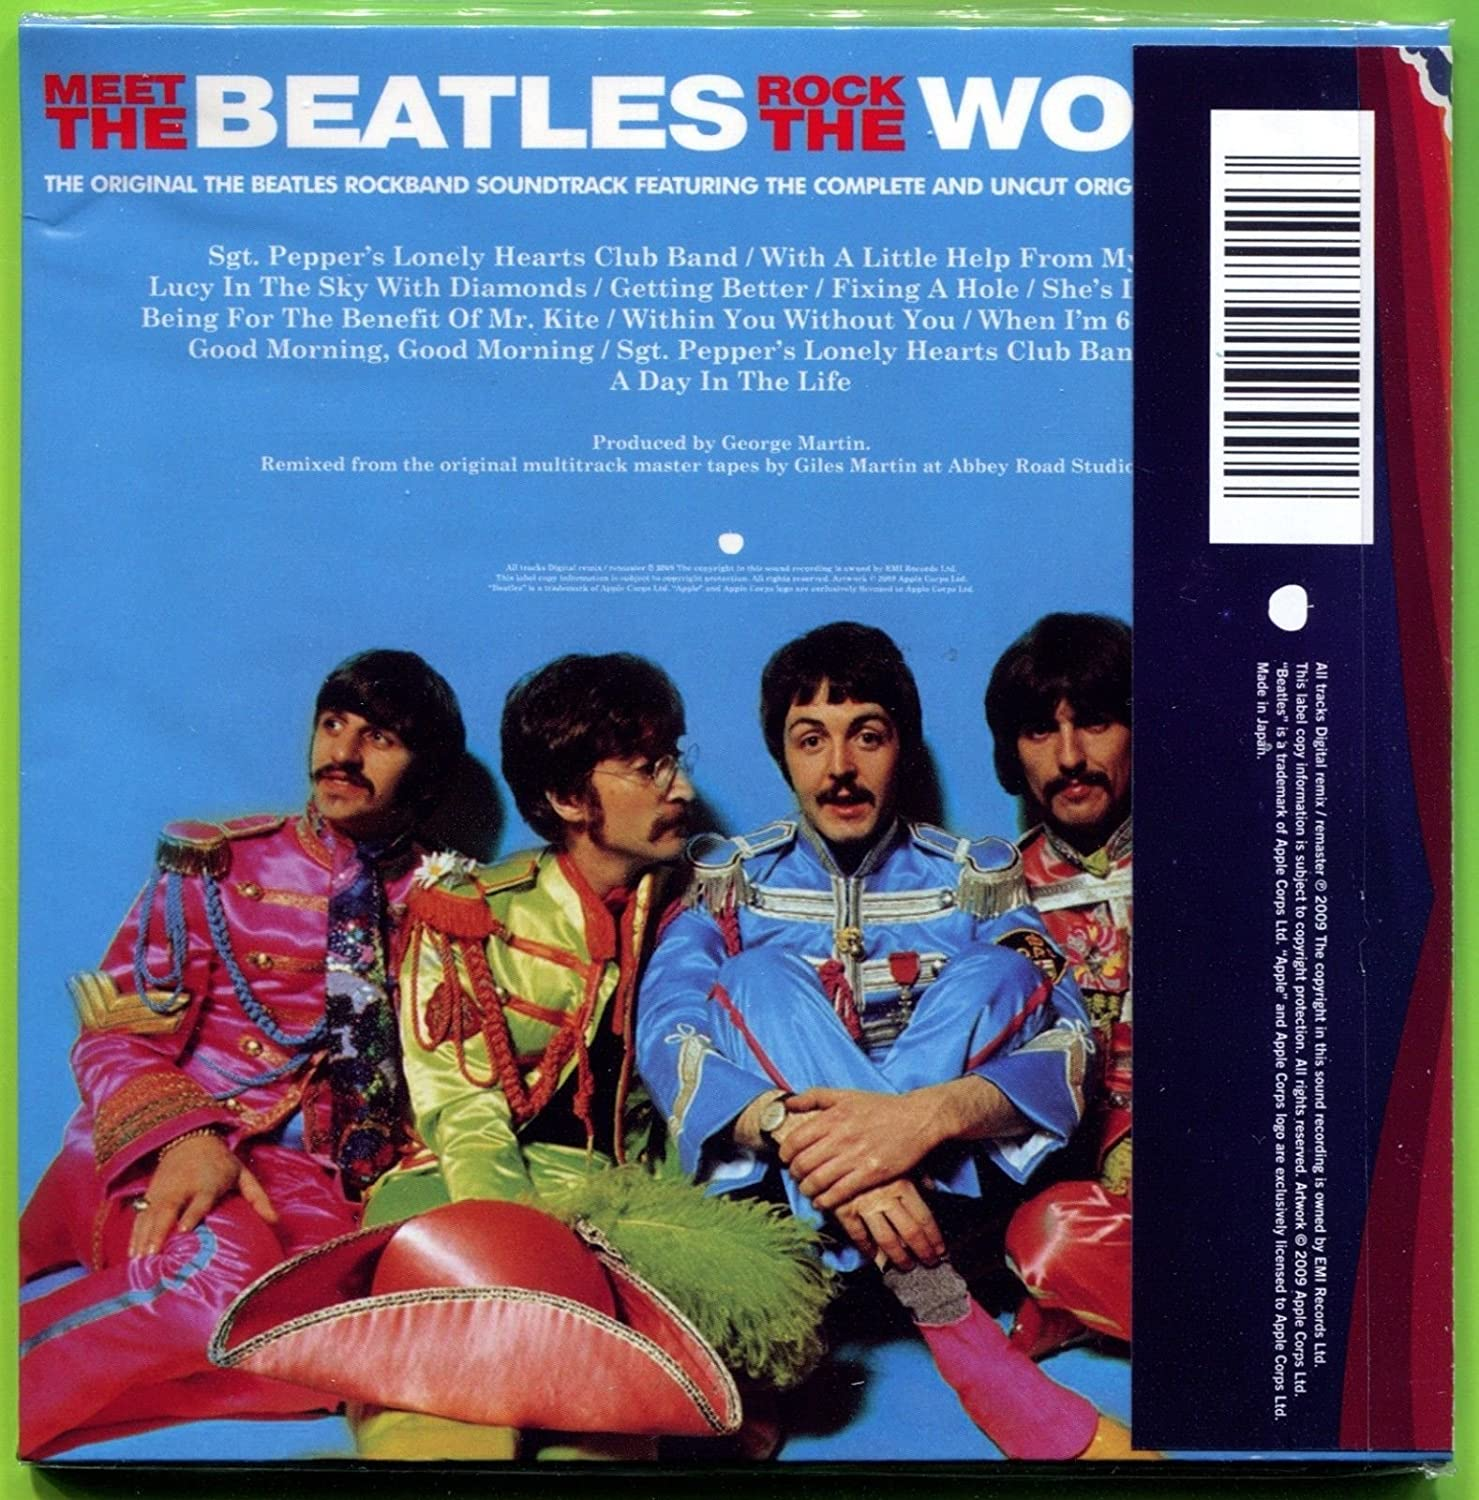 The Beatles SGT  PEPPER'S LONELY HEARTS CLUB BAND (ROCKBAND